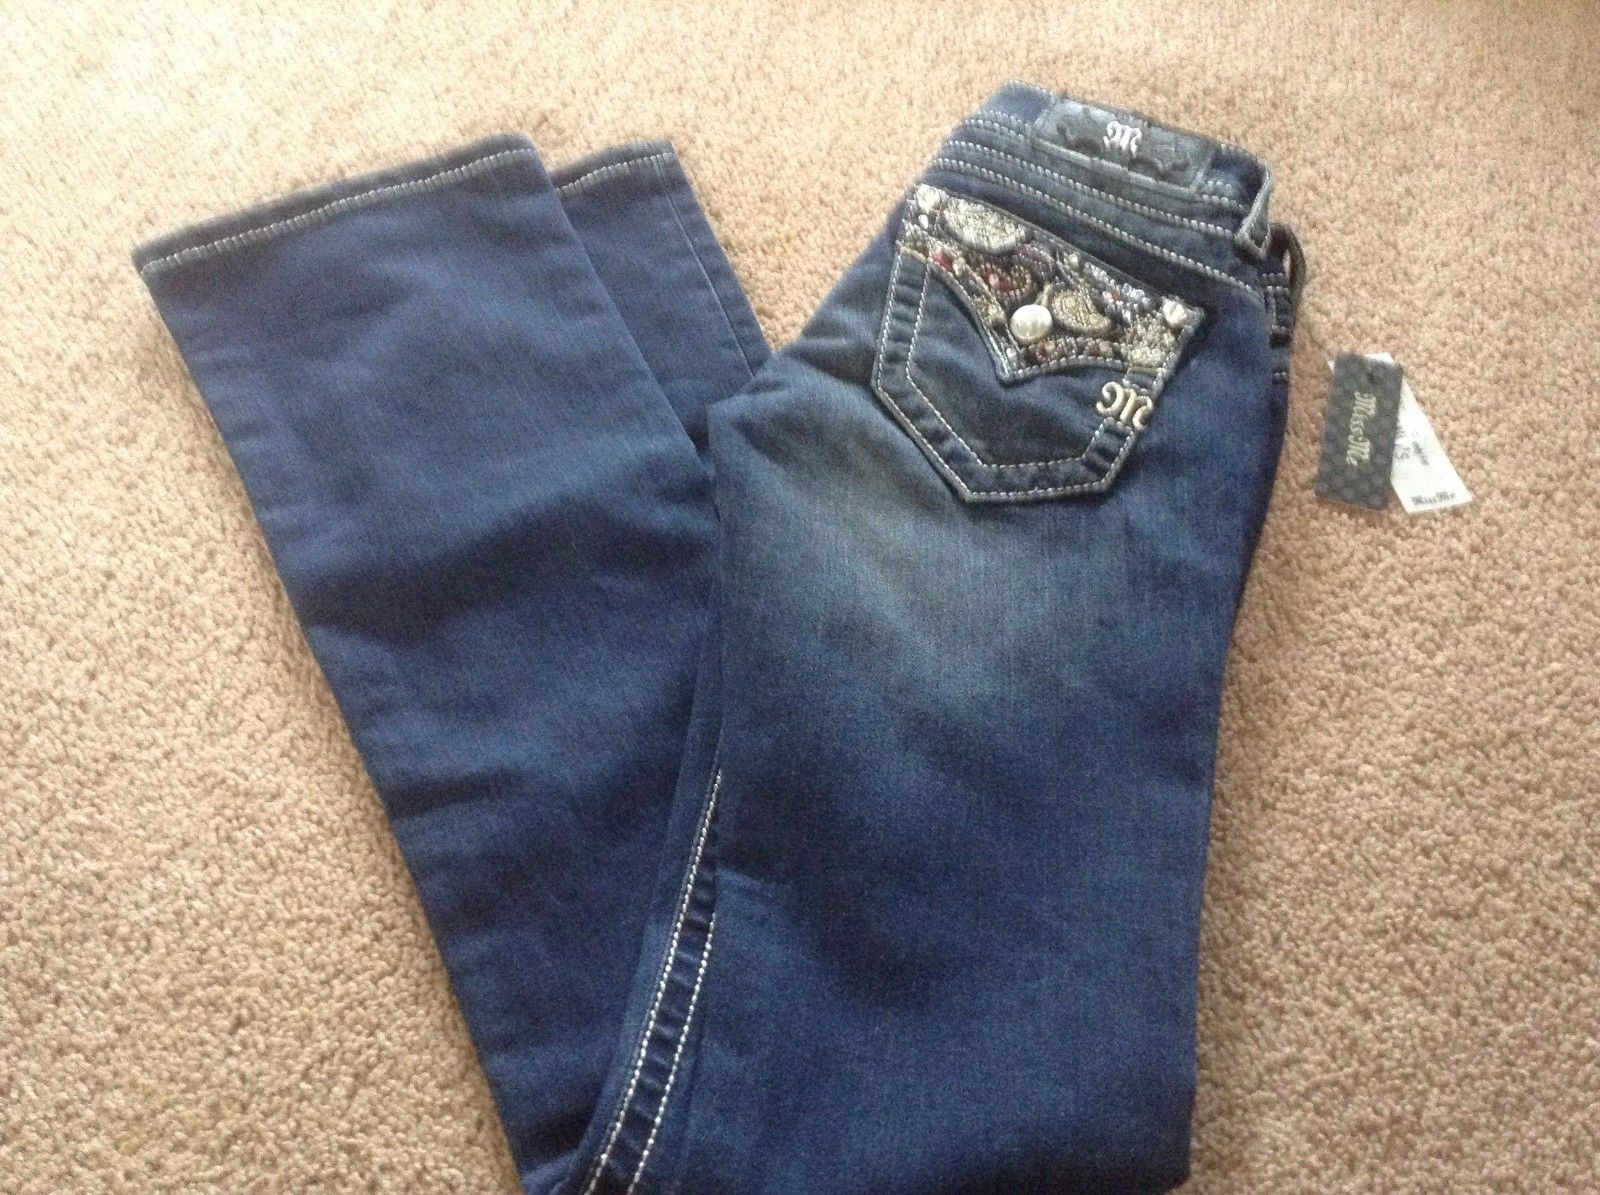 MISS ME Jeans Size 24 Signature Boot Cut Paisley Pockets JY9041B NWT new macys